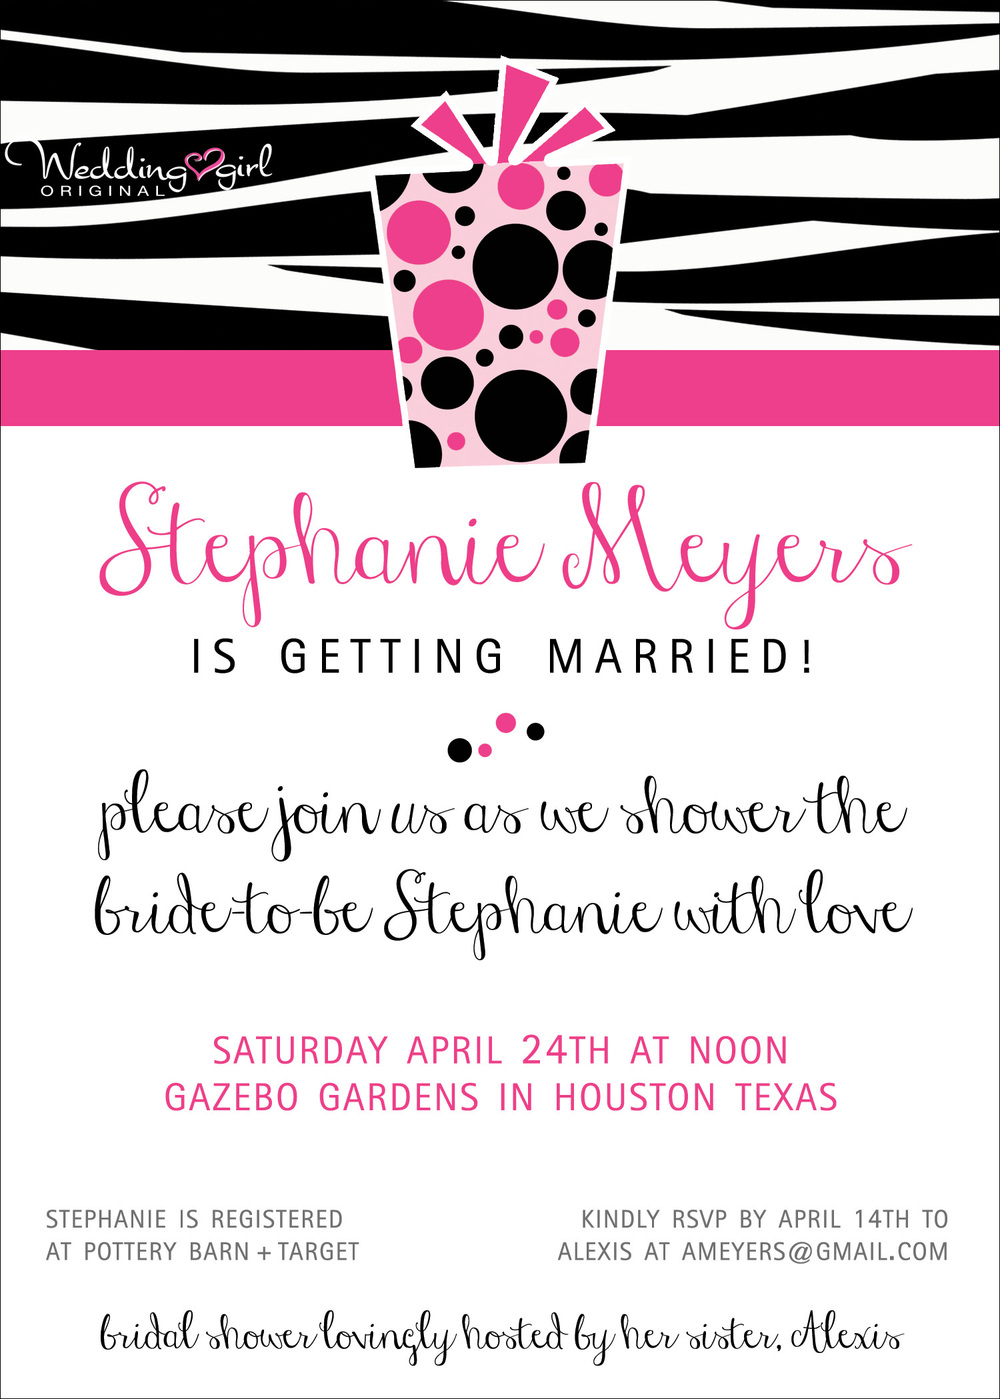 Hot Pink And Black Wedding Invitations with amazing invitations layout